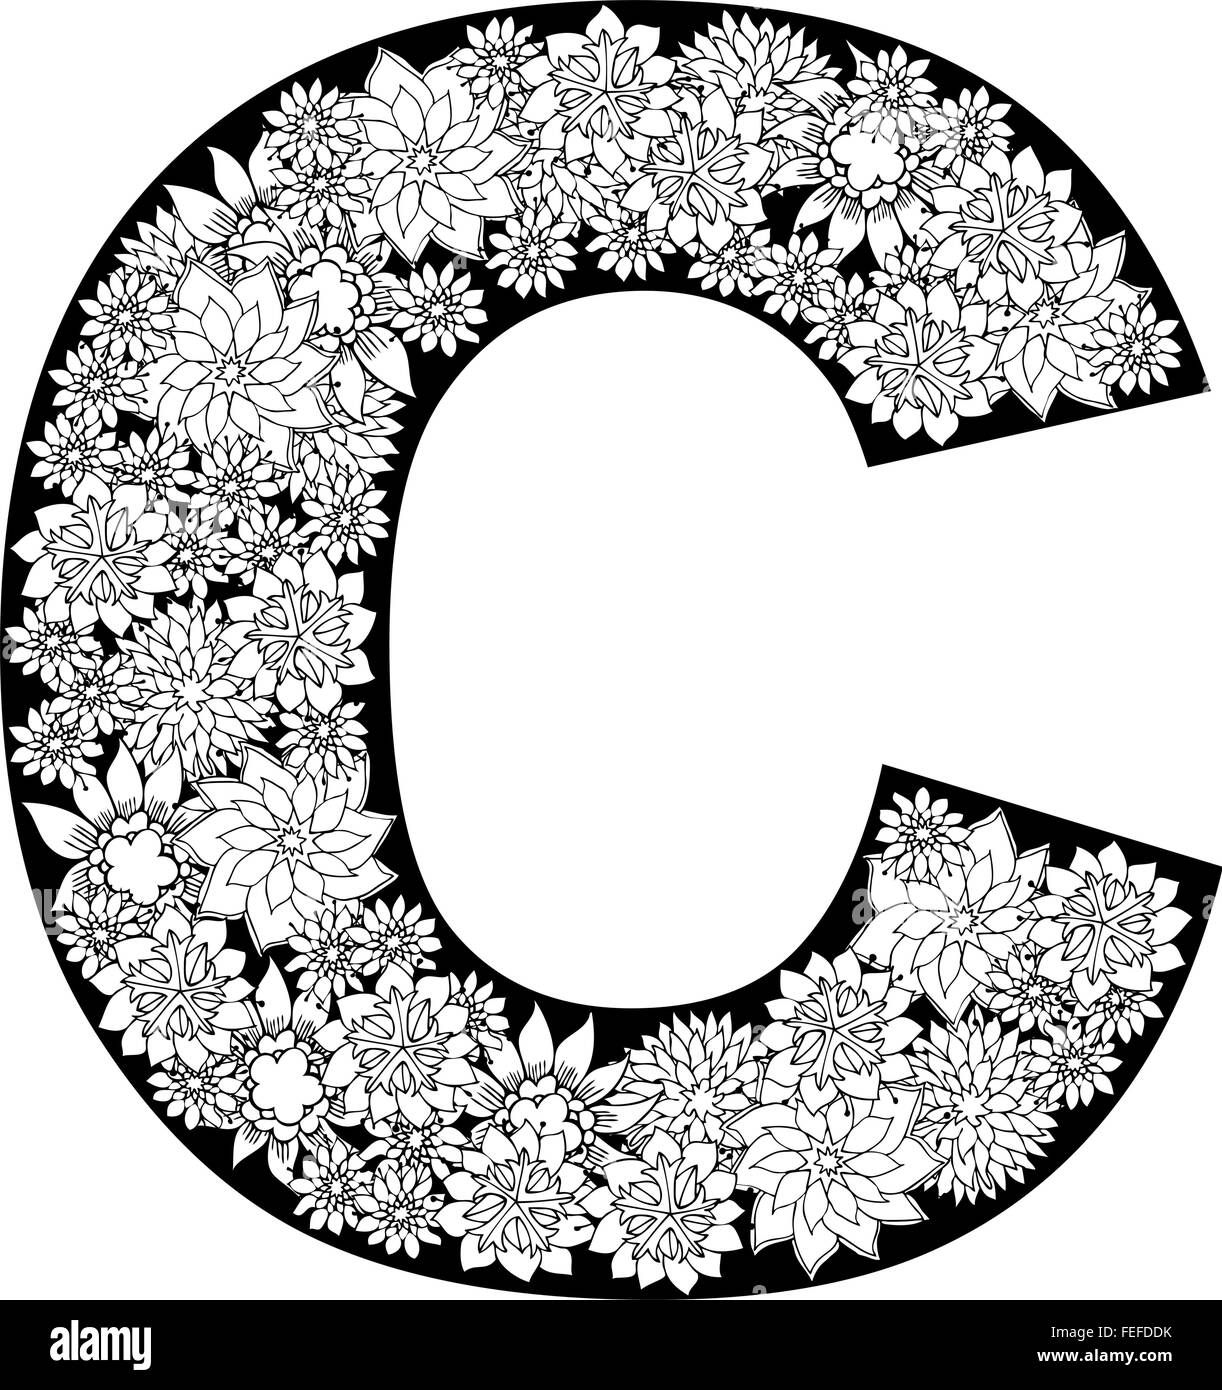 Diagram Hand Drawn Floral Alphabet Design Letter C Stock Vector